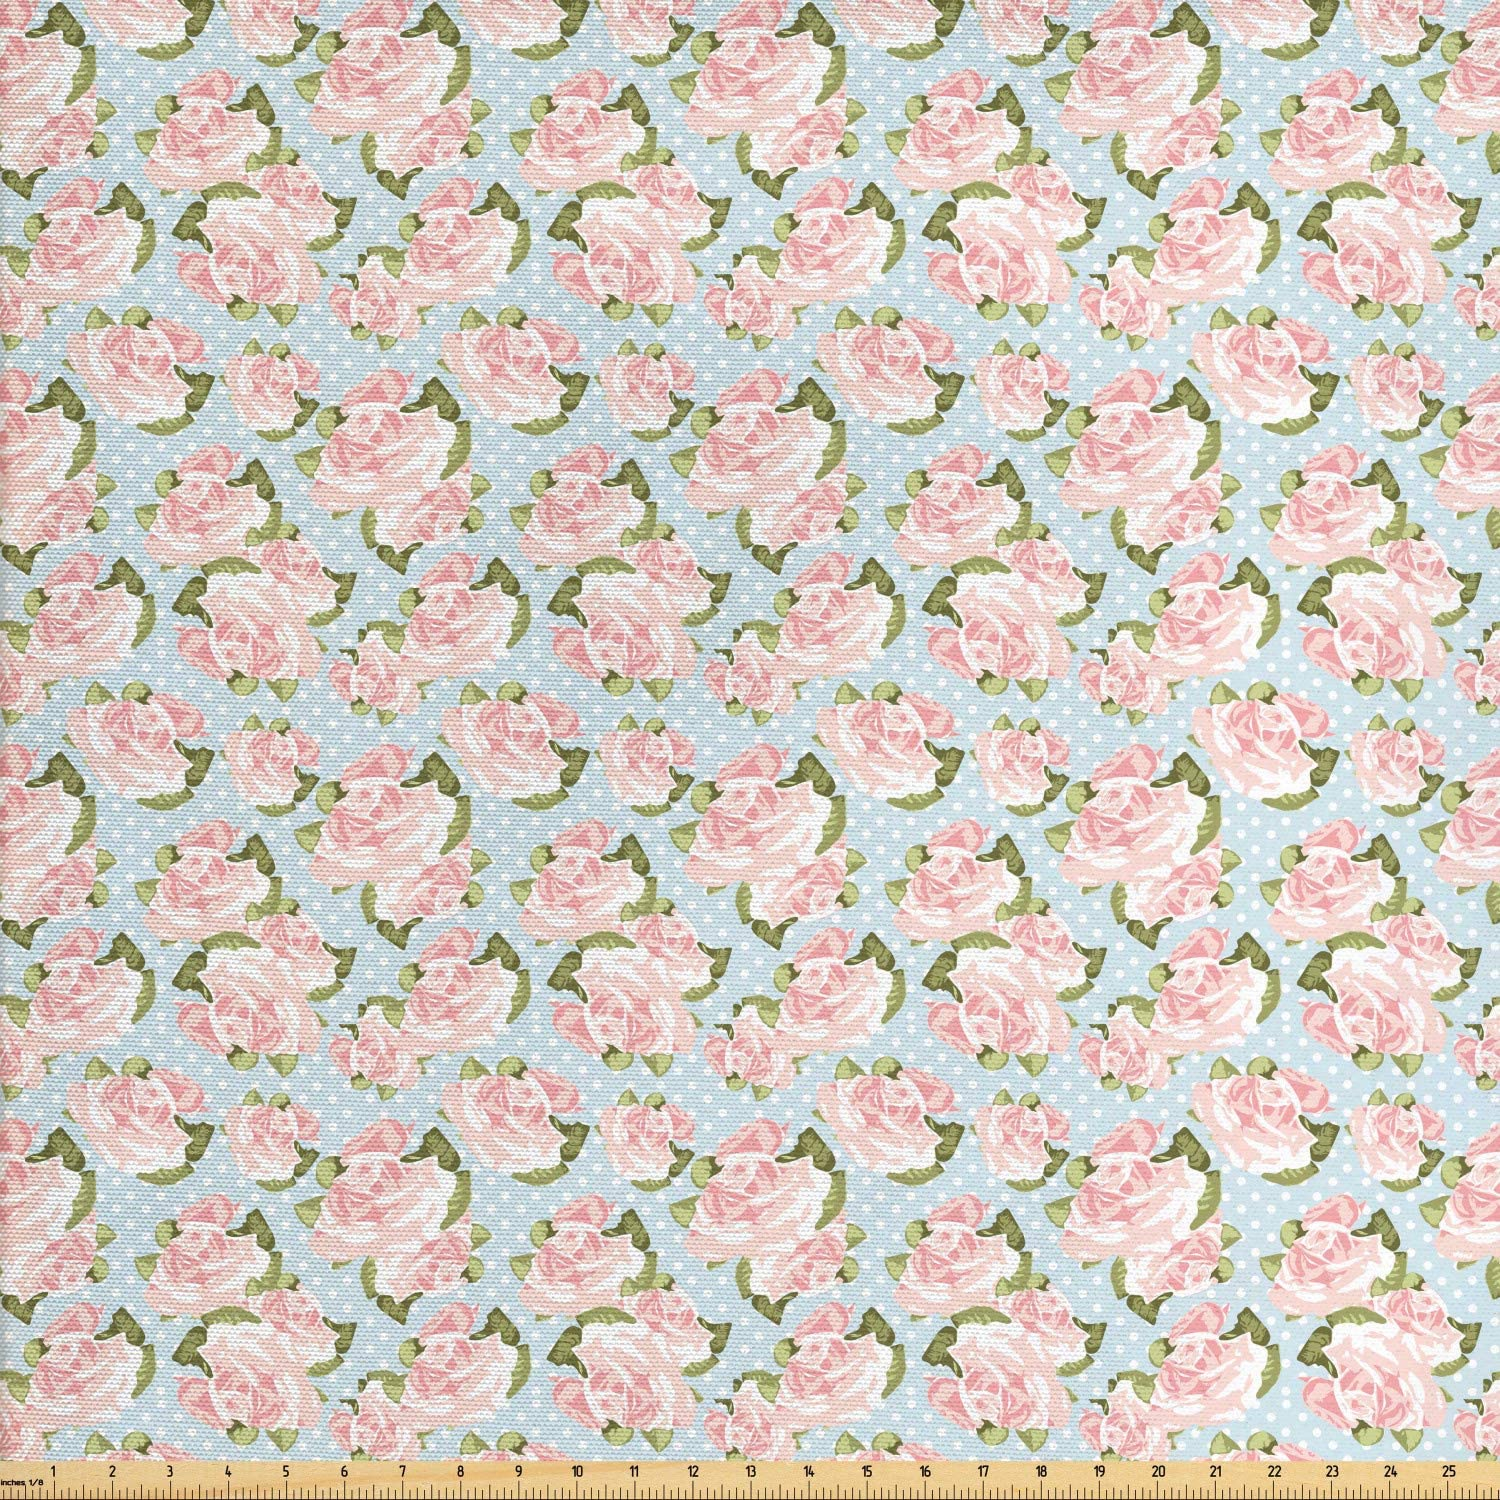 Ambesonne Shabby Flora Fabric by The Yard, English Gardening Plants Antique Victorian Fashion with Polka Dots, Decorative Fabric for Upholstery and Home Accents, 1 Yard, Pink Teal